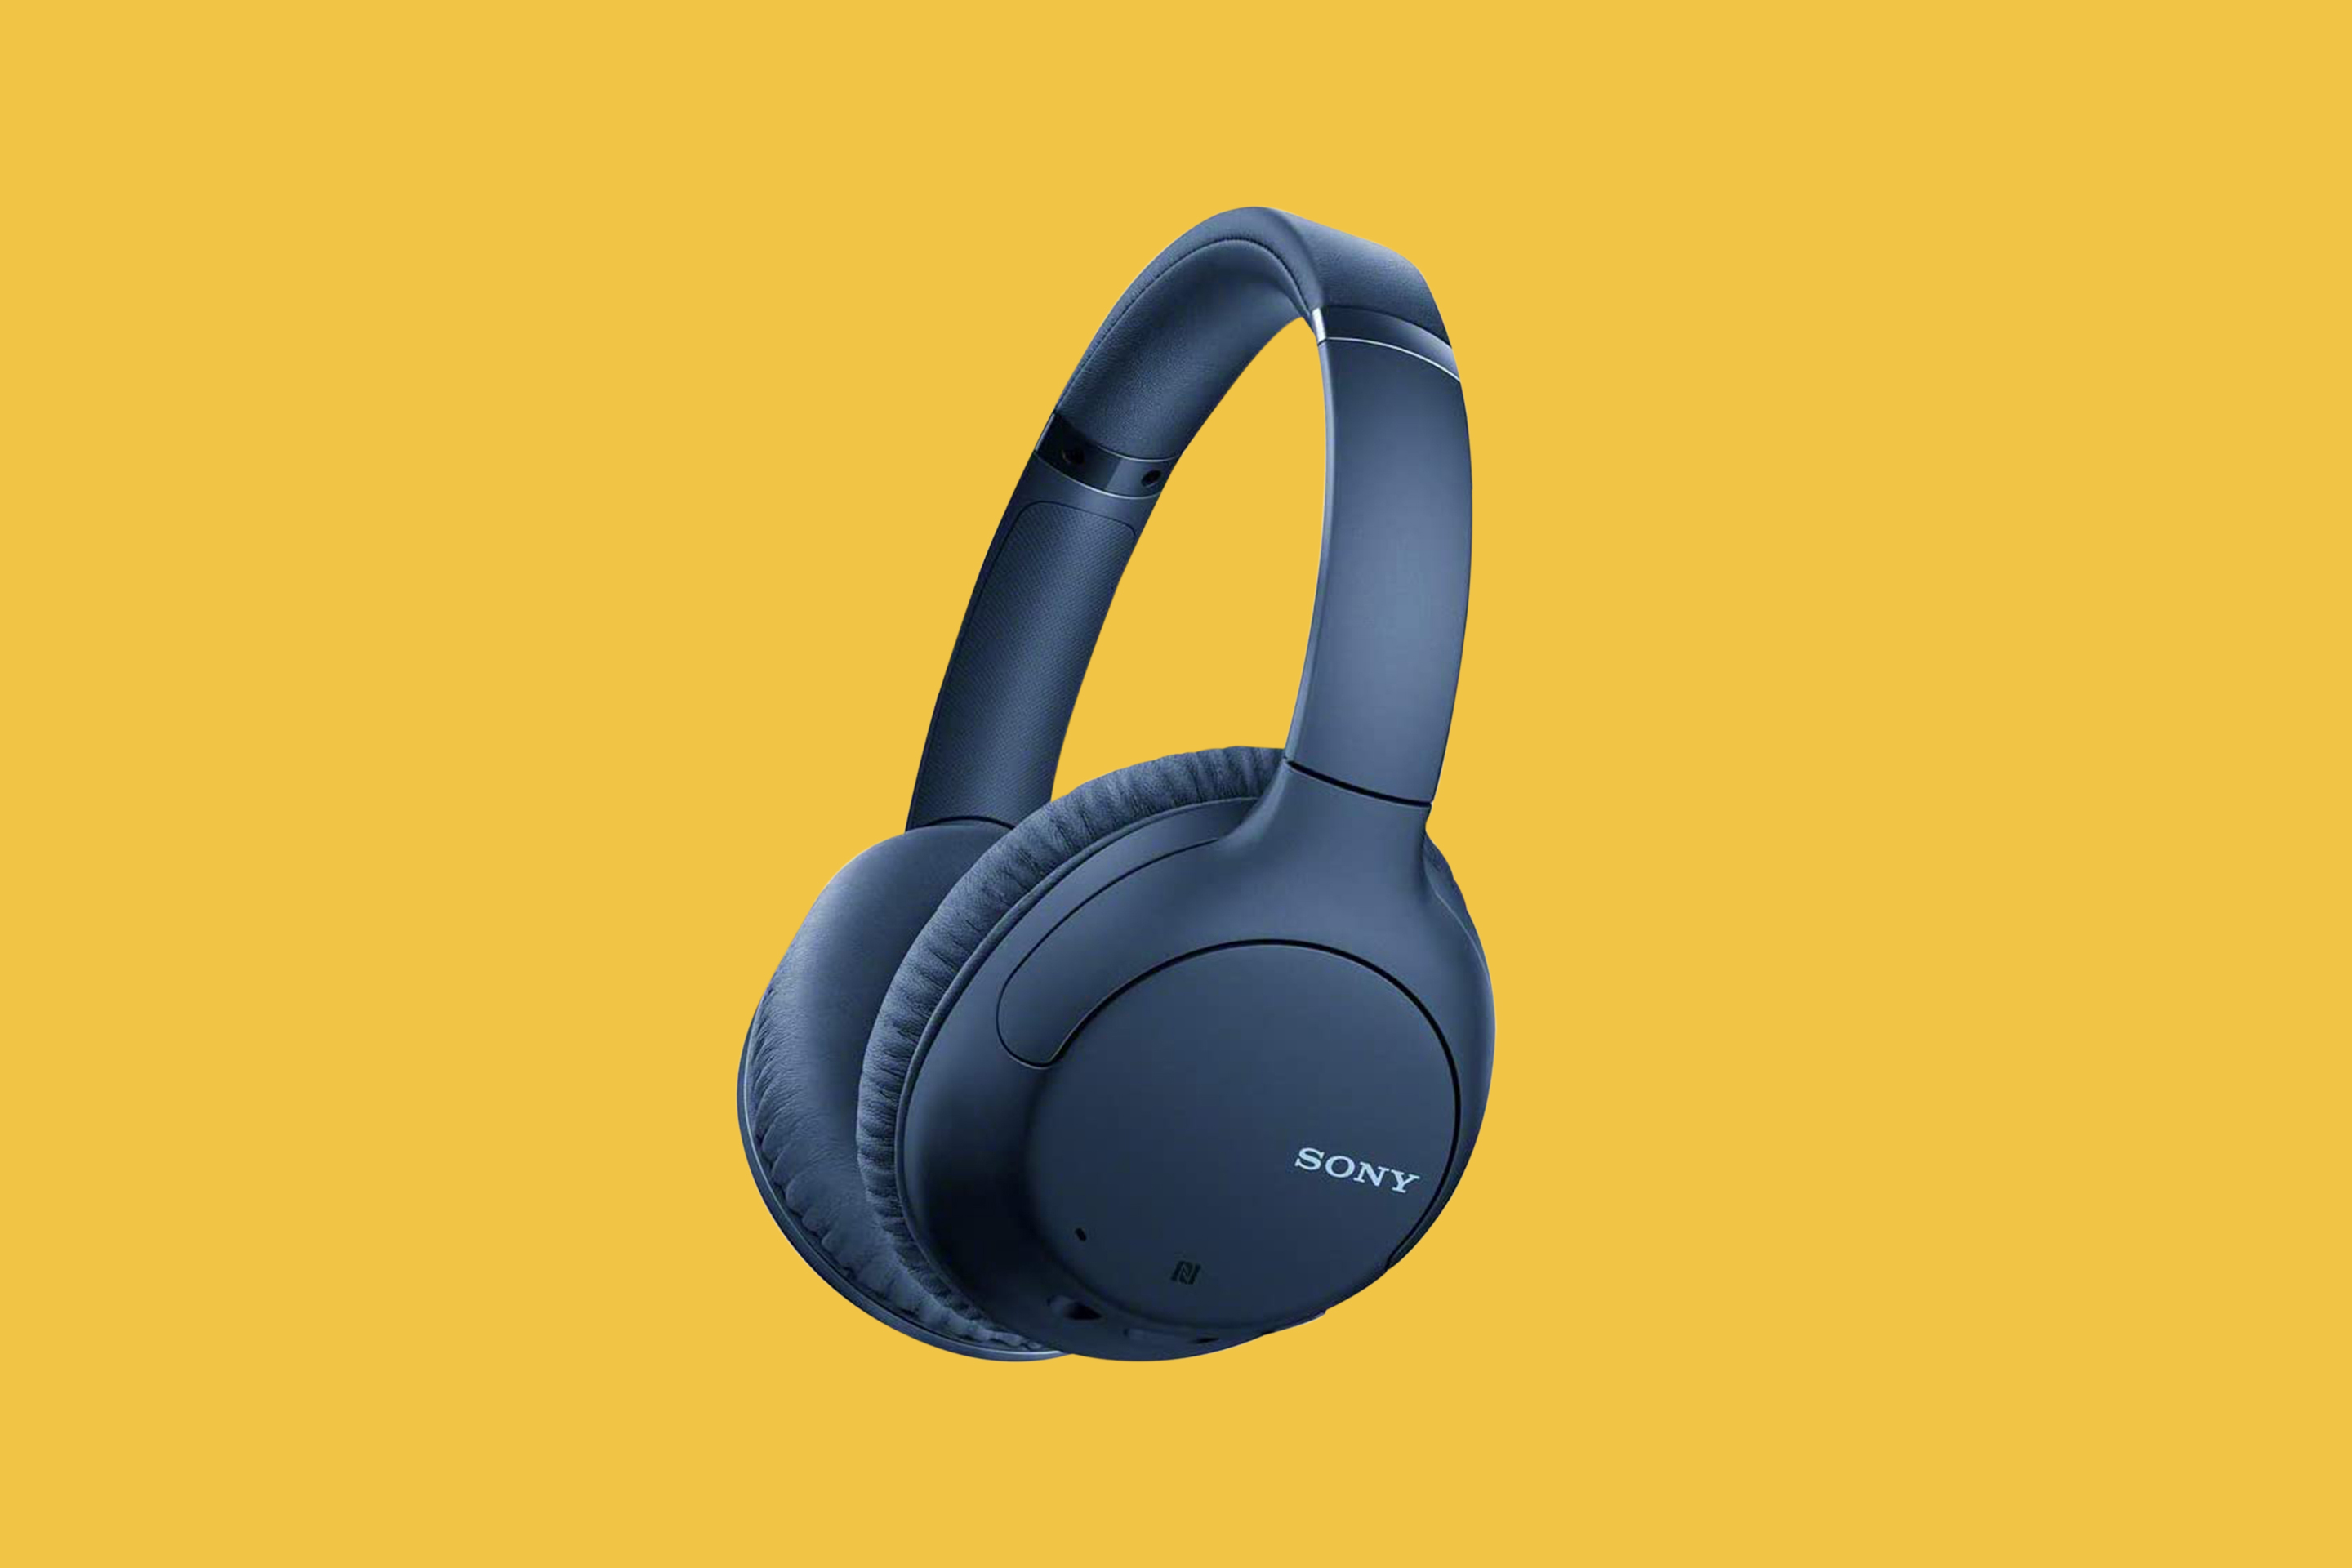 The Best Amazon Prime Day Deals on AirPods, Roombas, Chromebooks, Beats Headphones and More